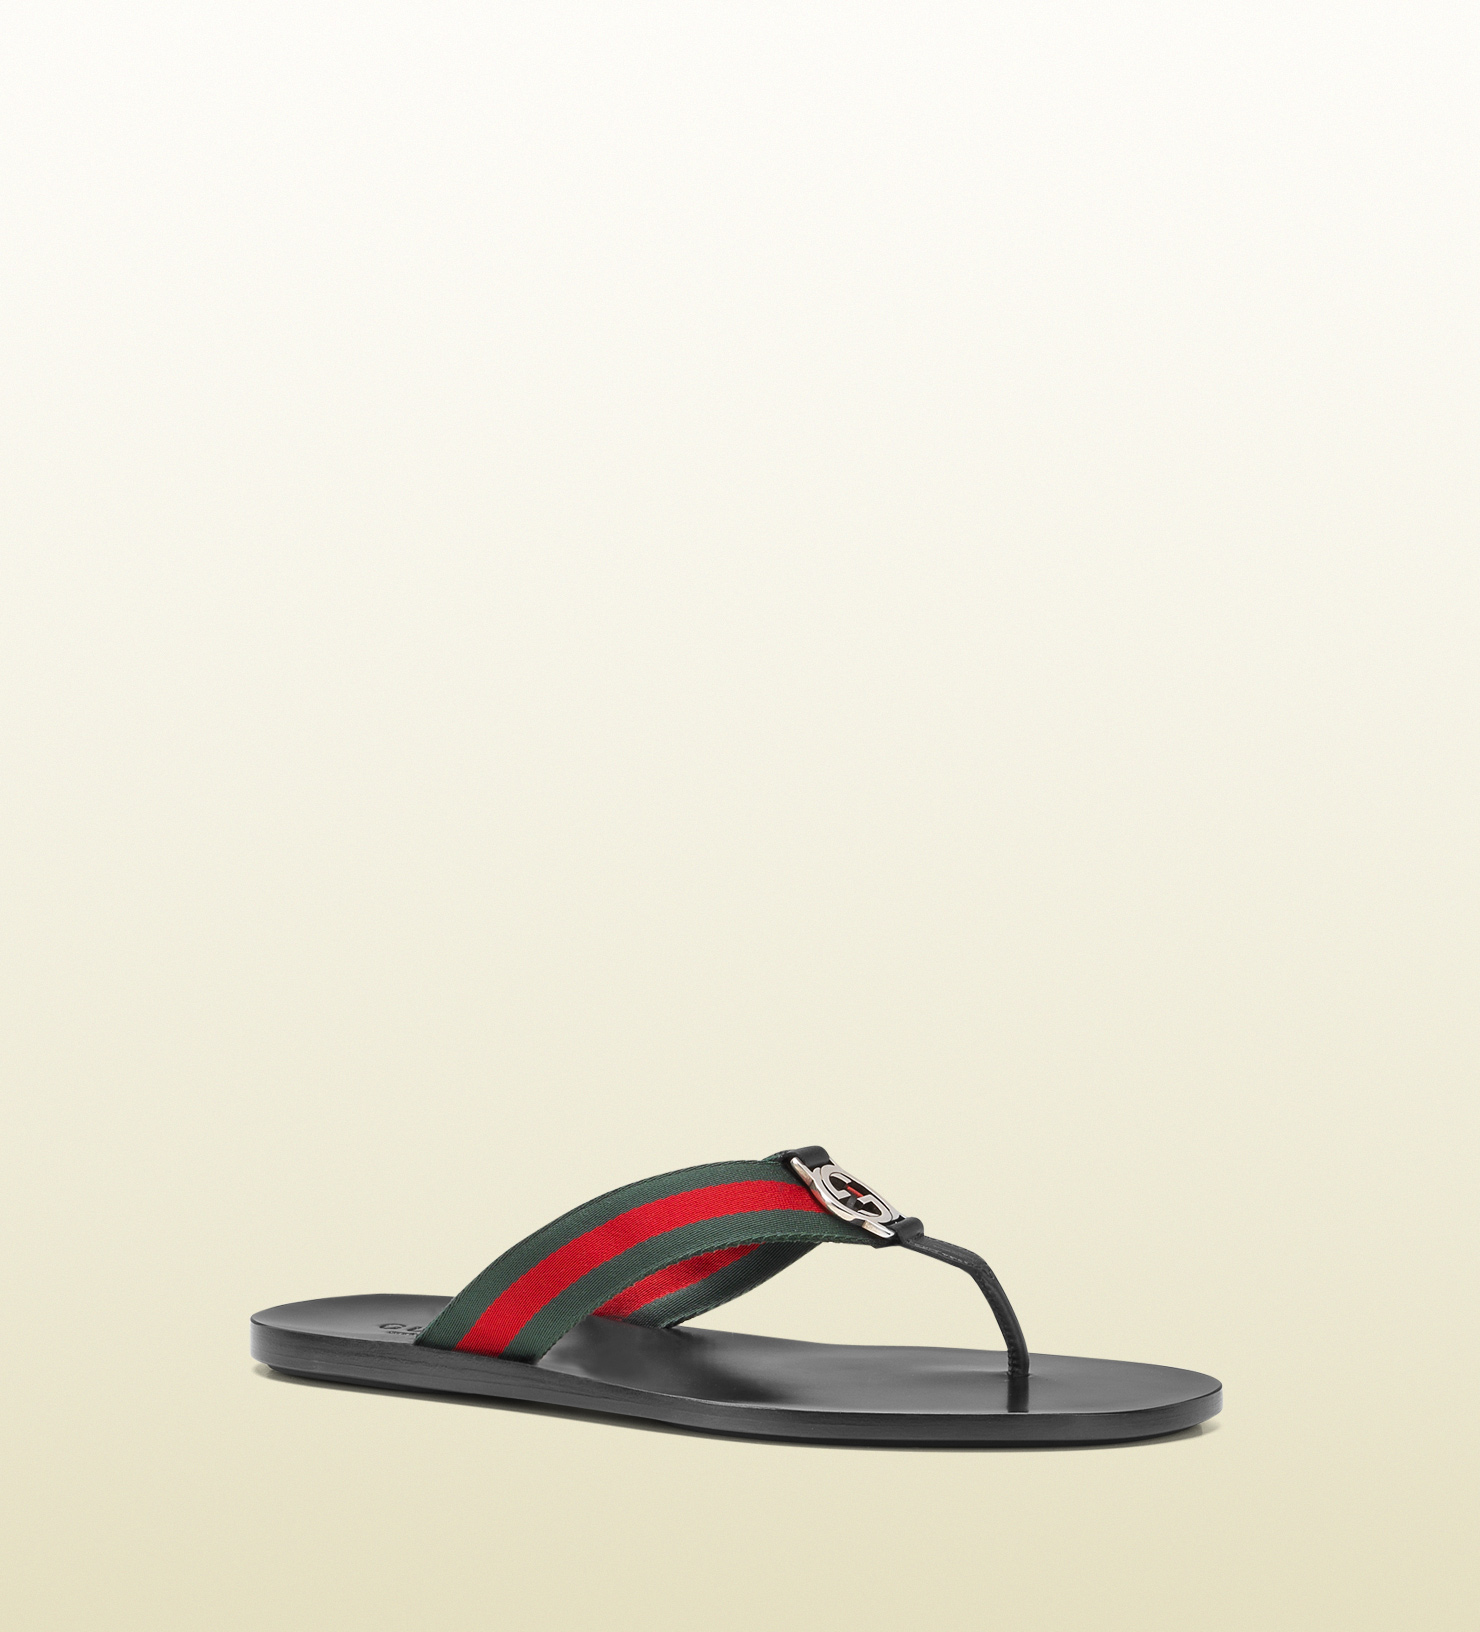 98d3ee92ebbedb Lyst - Gucci Signature Web Thong Sandal in Black for Men